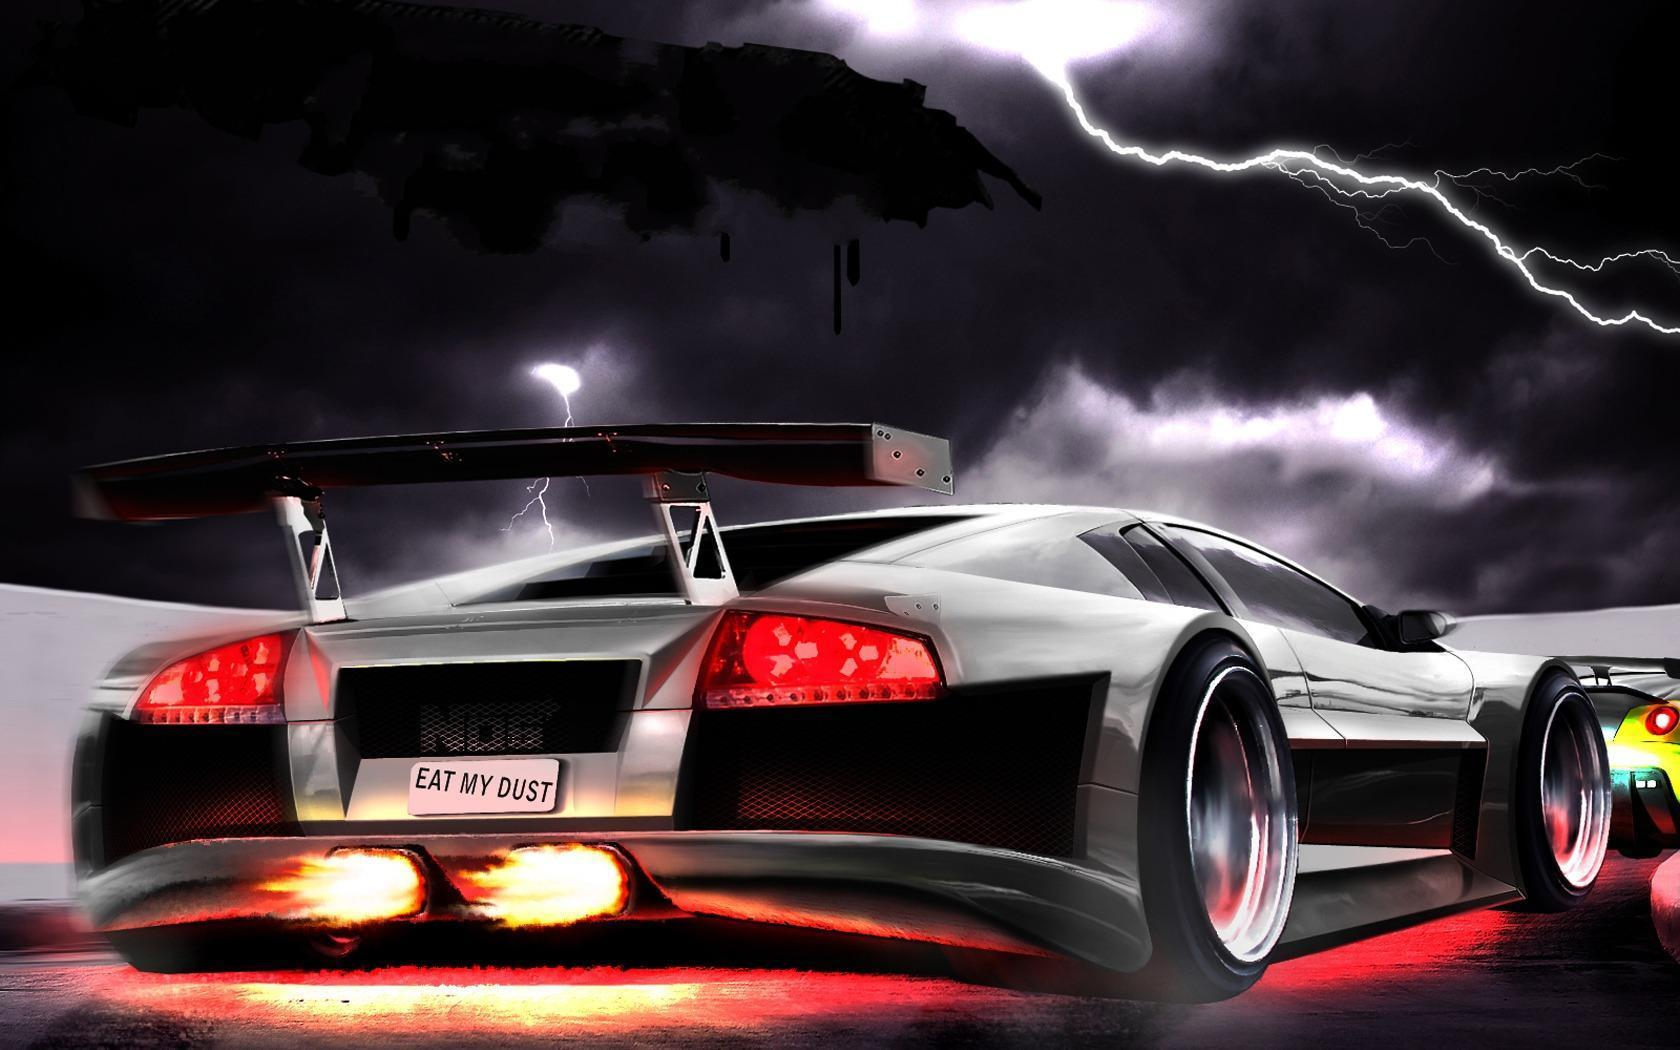 Desktop Backgrounds Pictures Cars | Free Desk Wallpapers